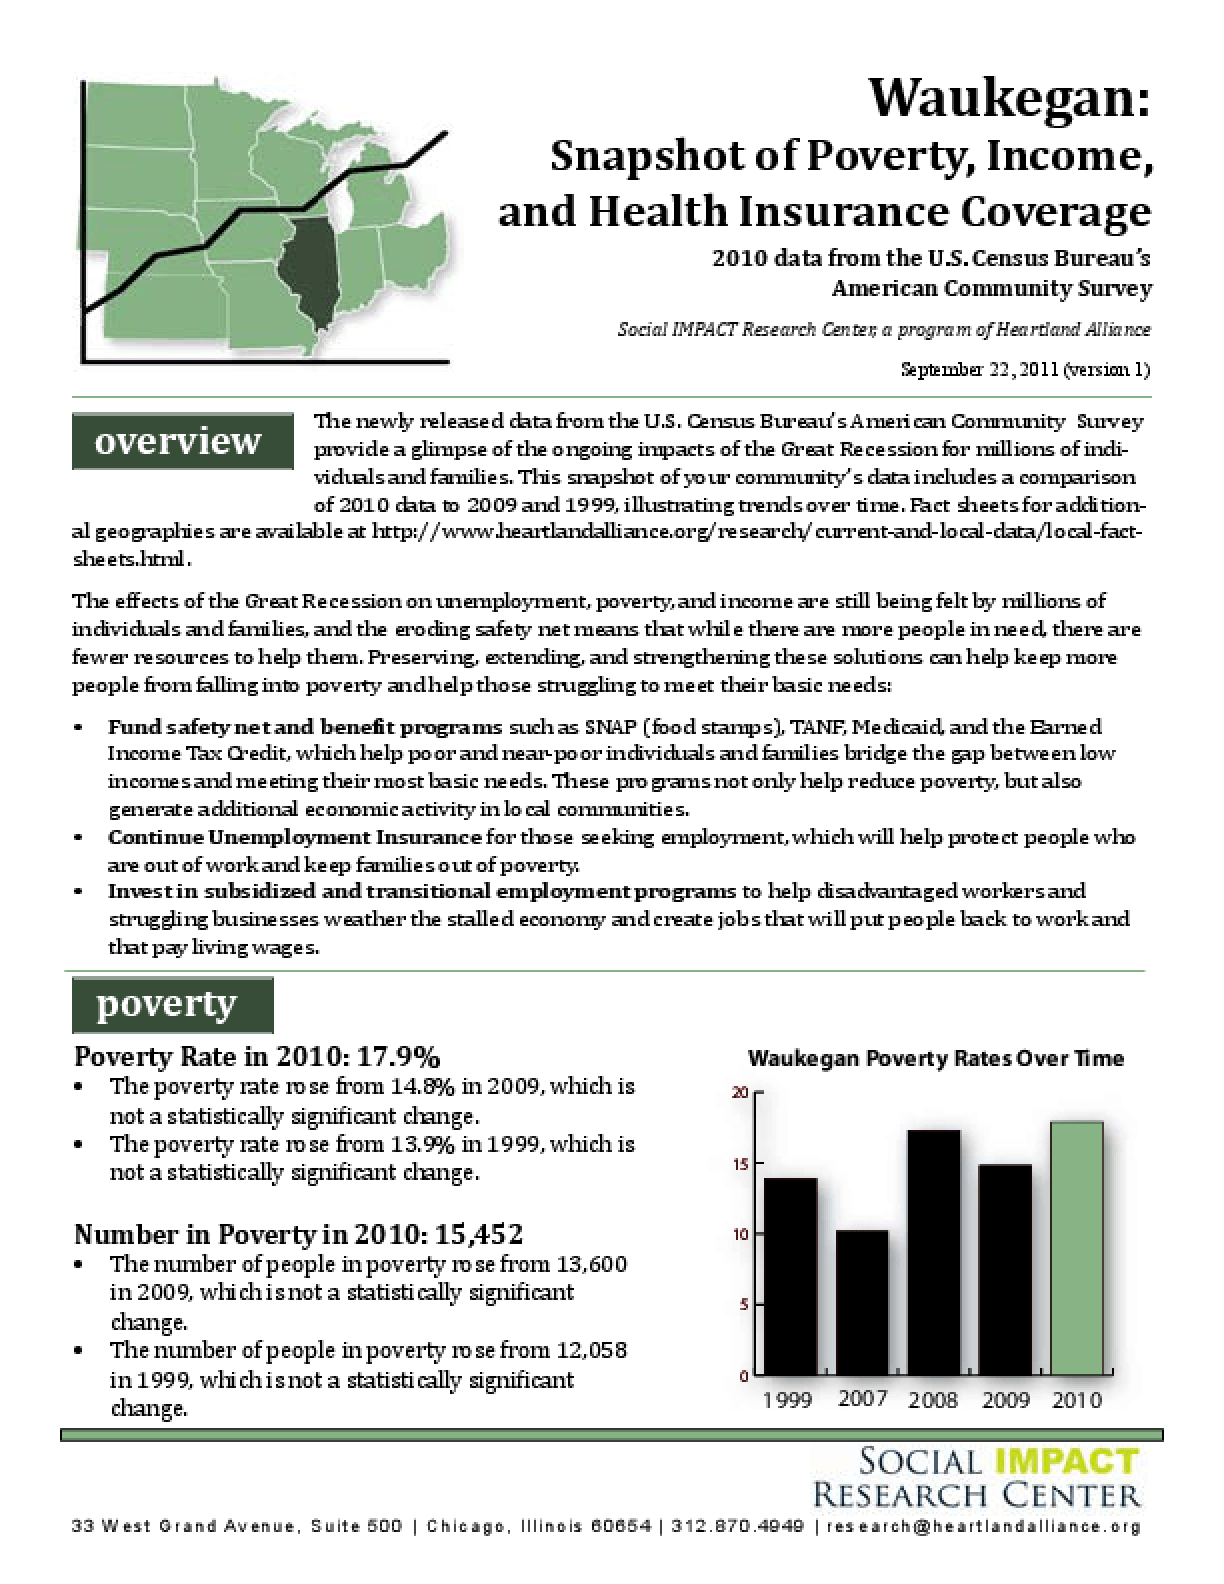 Waukegan: Snapshot of Poverty, Income, and Health Insurance Coverage